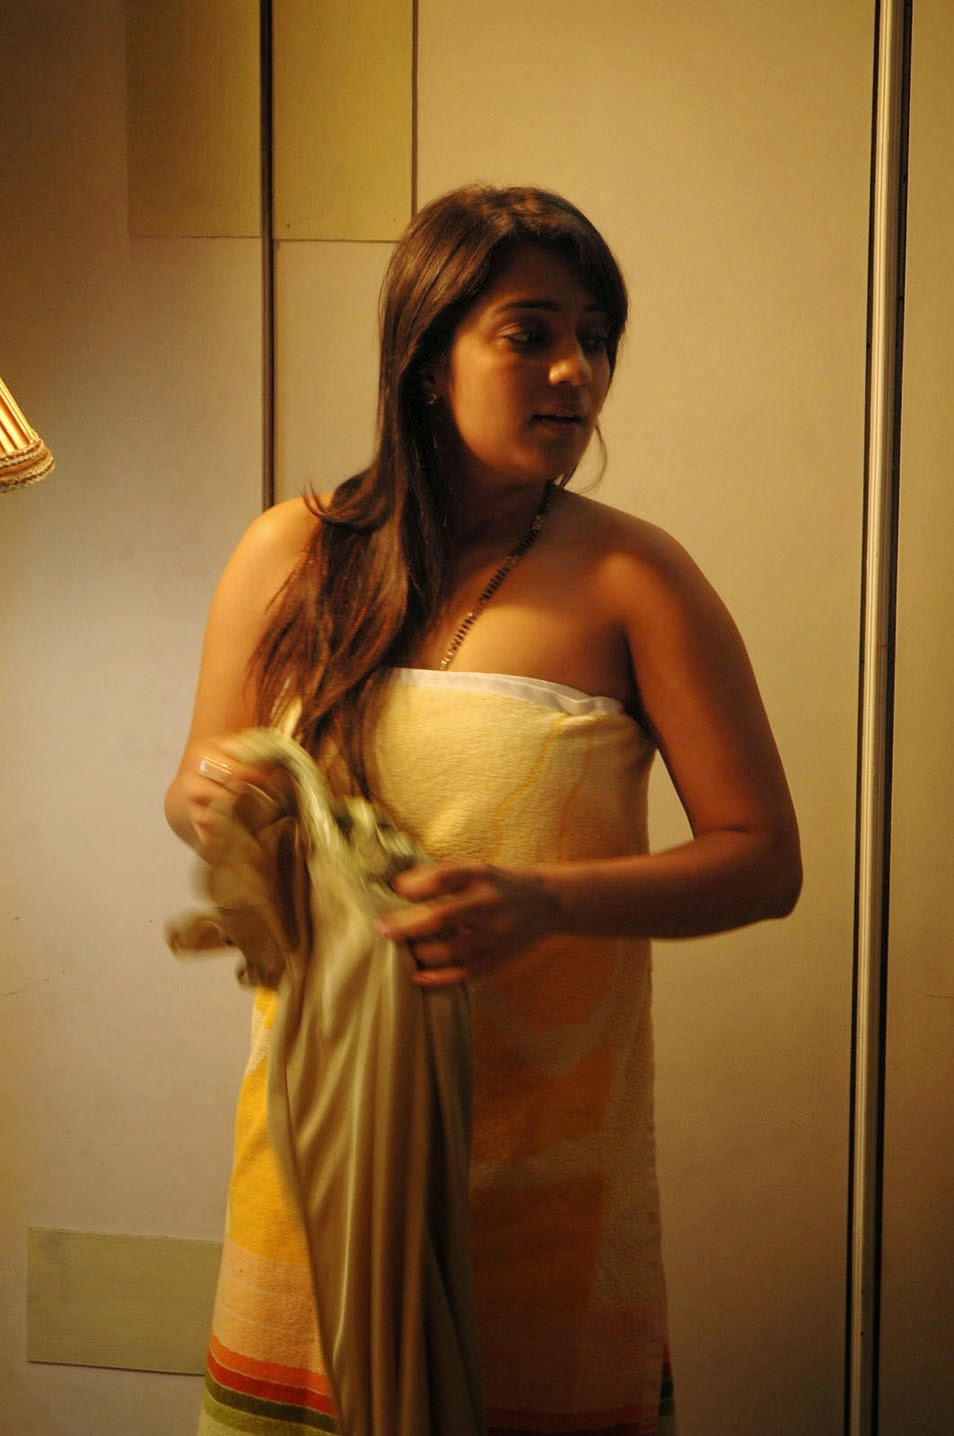 Nikitha Hot Photo HD Galleryz from  Apartment Telugu Movie ,N, Nikitha, Nikitha Hot images, Telugu Movie Actress, Hot Images, Tollywood Actress, HD Actress Gallery, latest Actress HD Photo Gallery, Latest actress Stills, Indian Actress, Actress HD Photo Gallery,